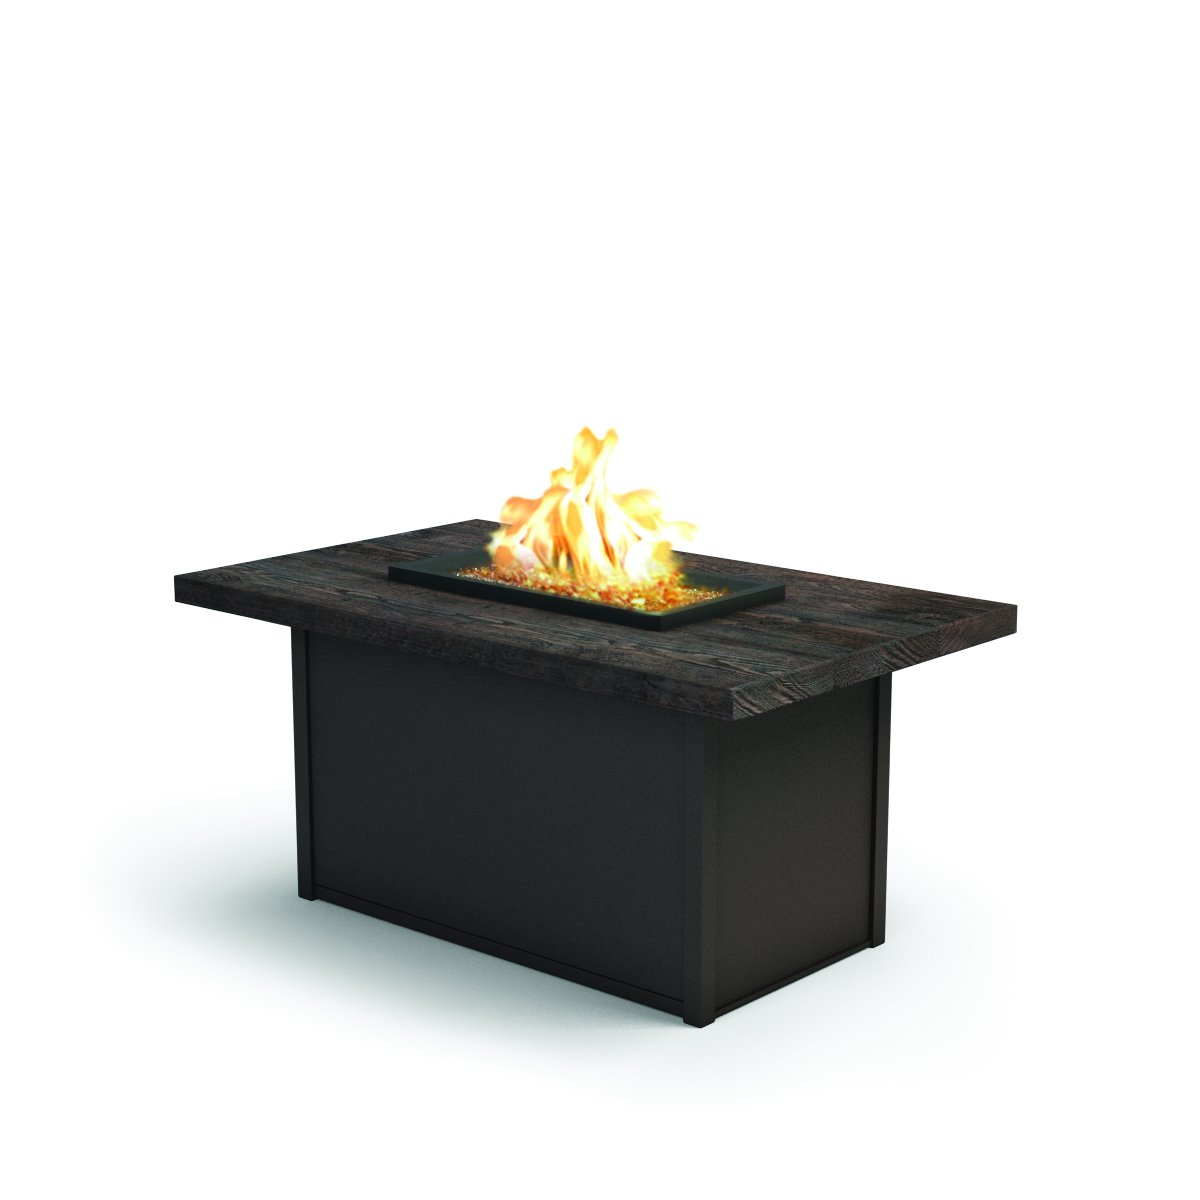 "Homecrest Timber 32"" x 52"" Chat Fire Pit - 893252XCTM"